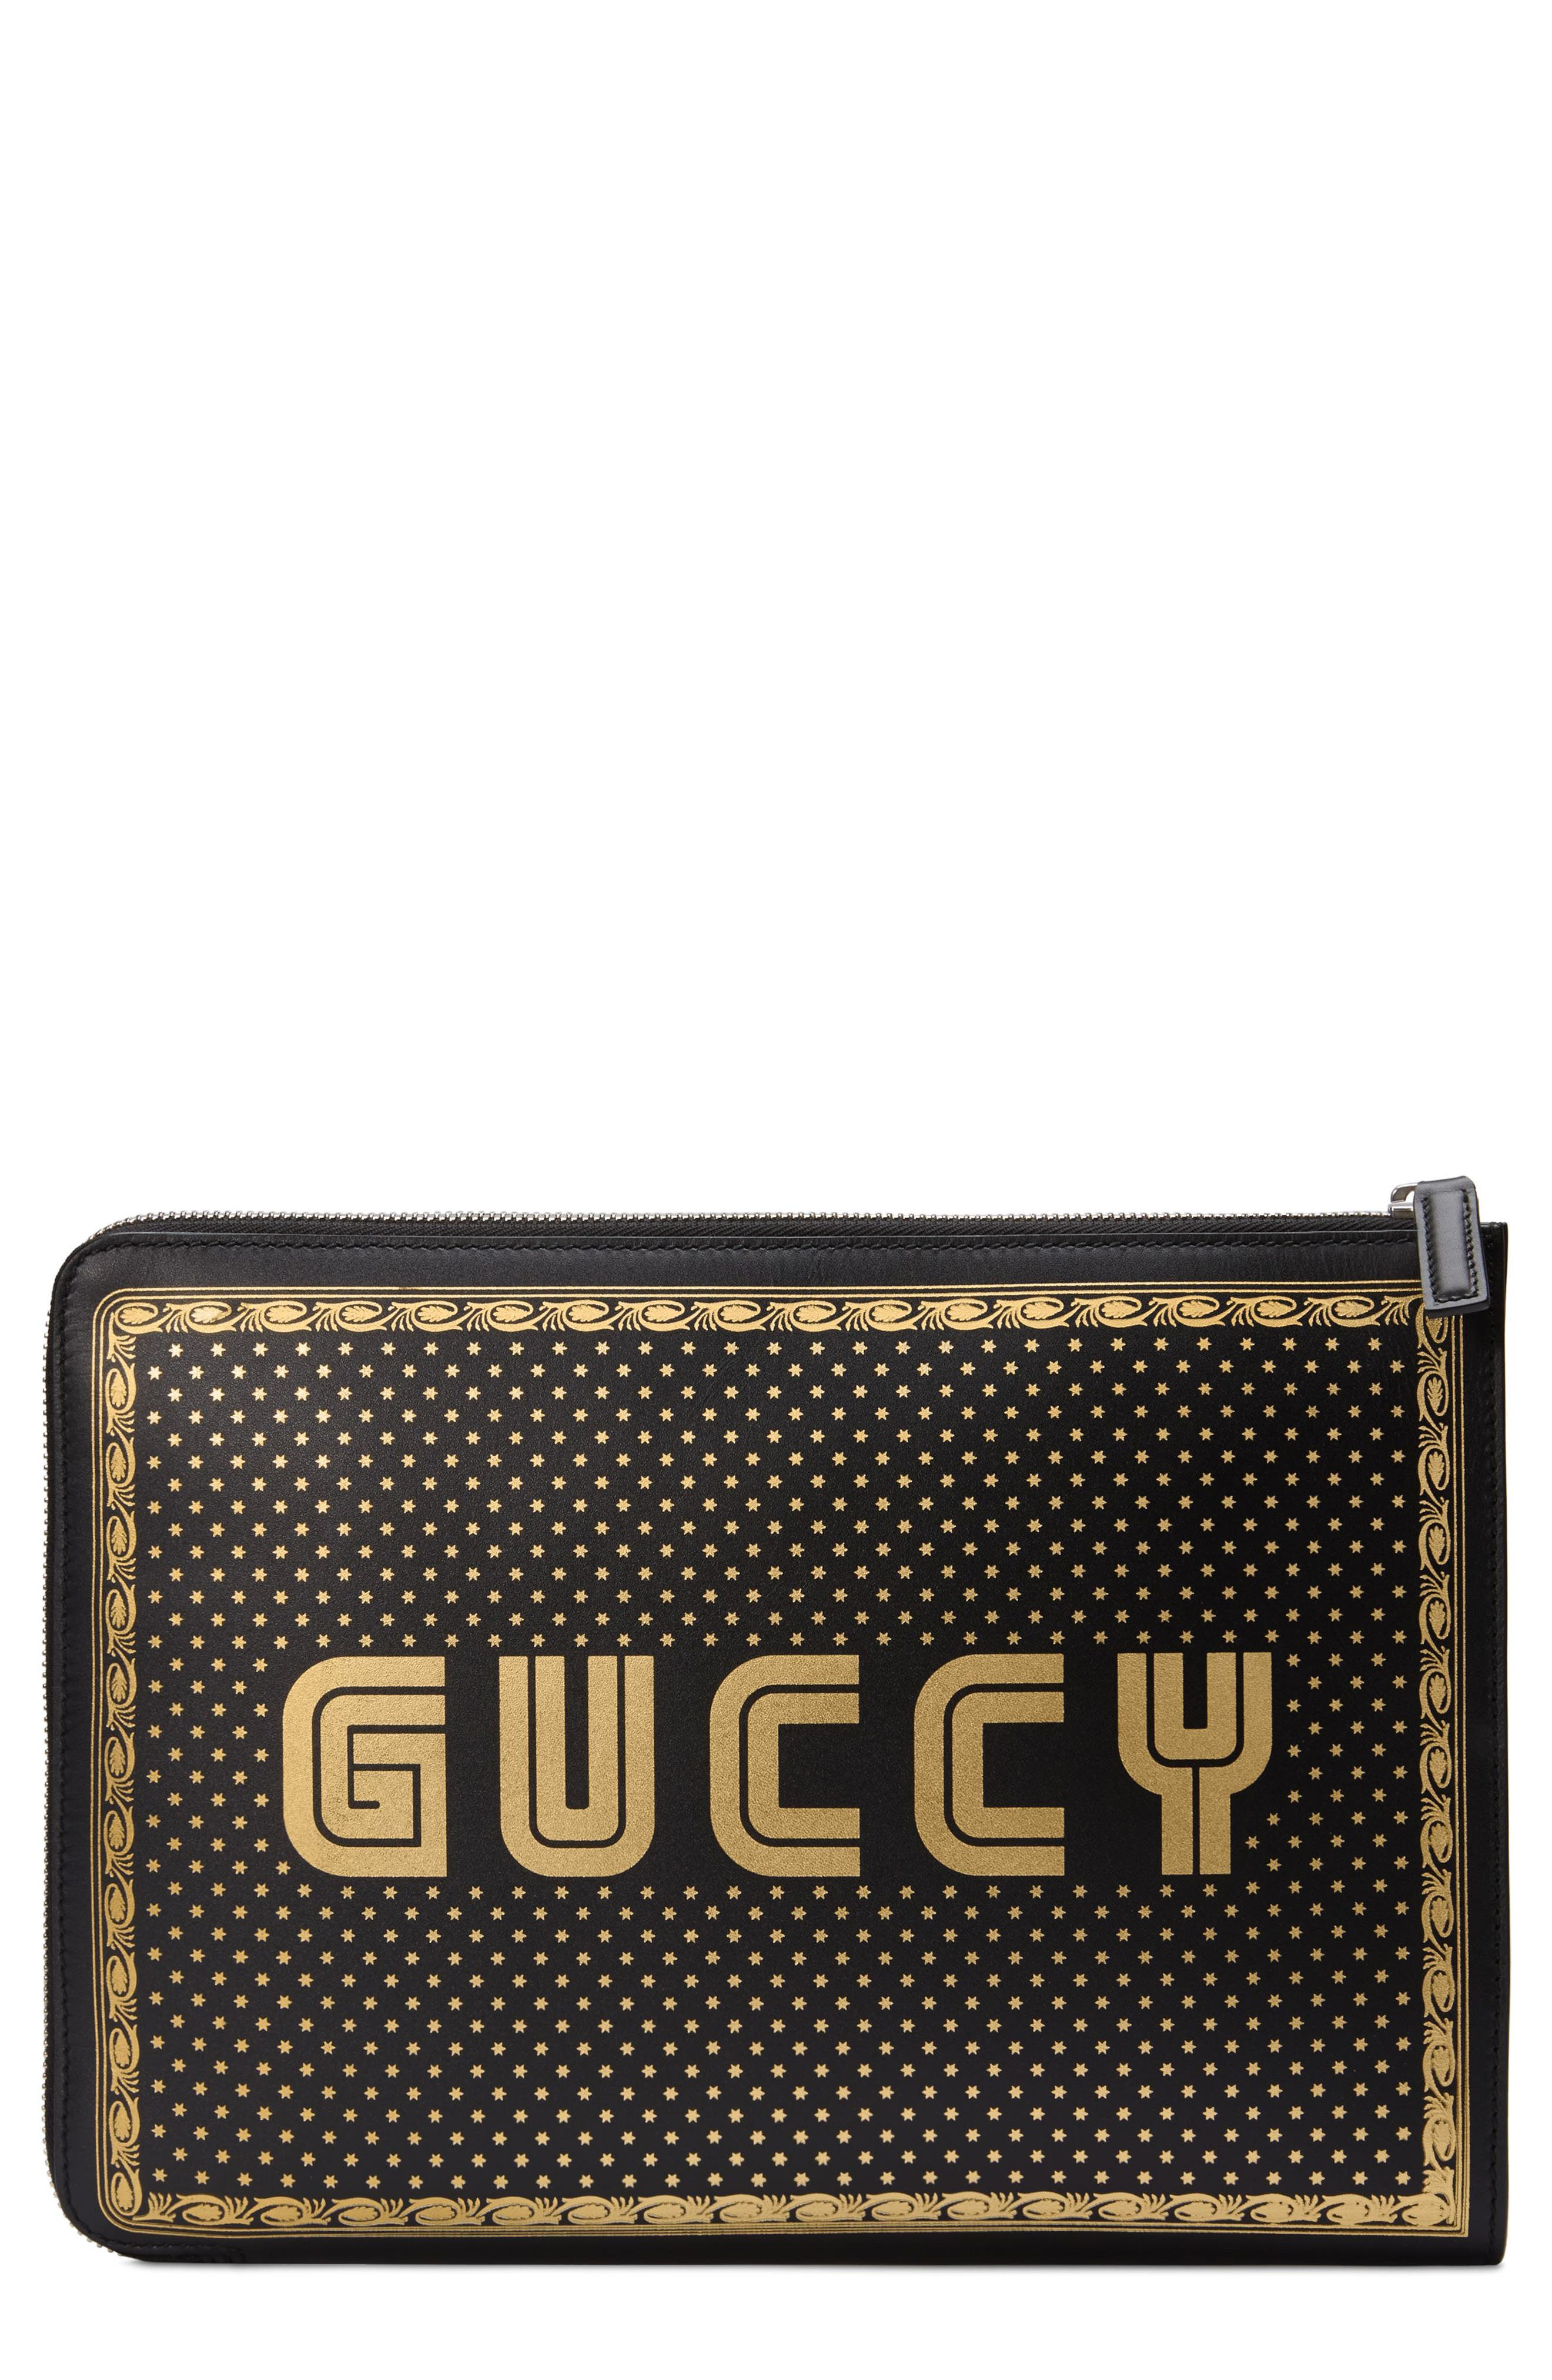 Guccy Logo Moon & Stars Leather Clutch,                         Main,                         color, NERO ORO/ NERO